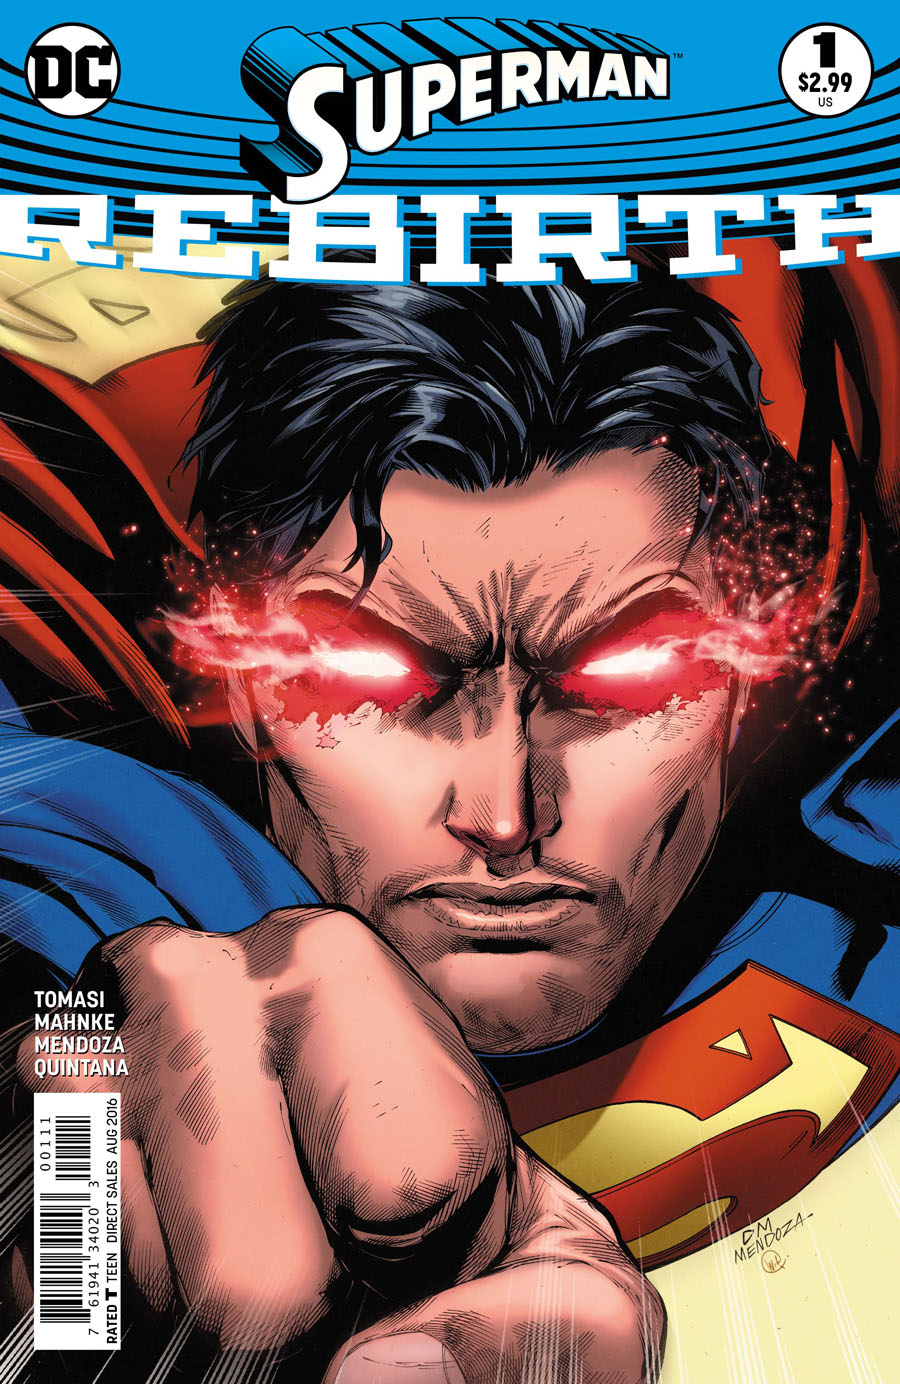 08-supermanrebirth01